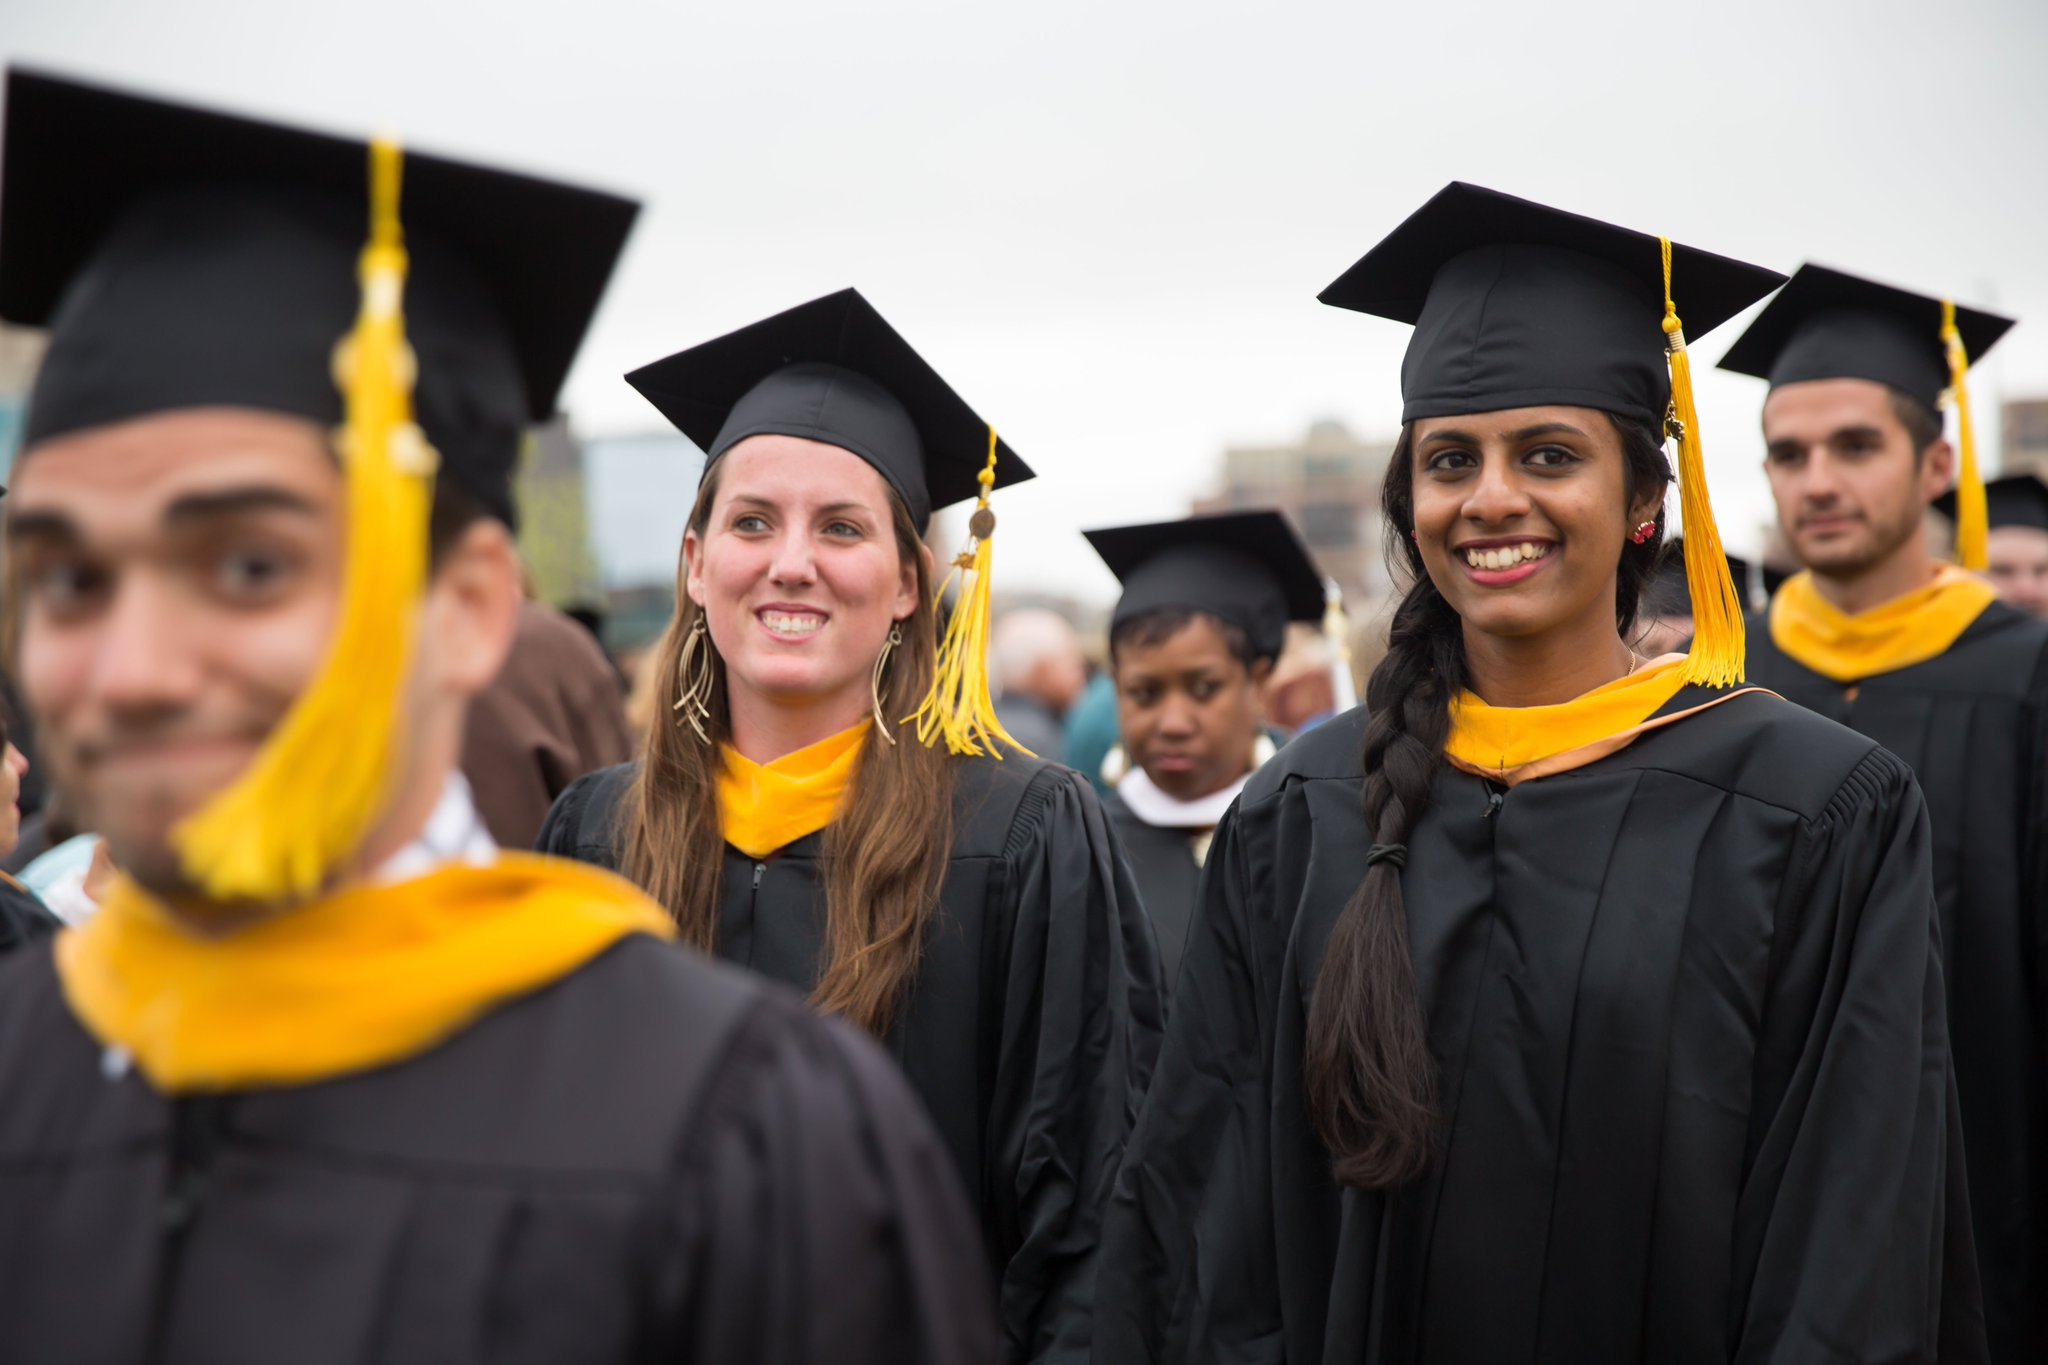 Commencement Facts: Our graduates represent over 20 different countries. #CUDenverGrad https://t.co/H0yrOhRthP